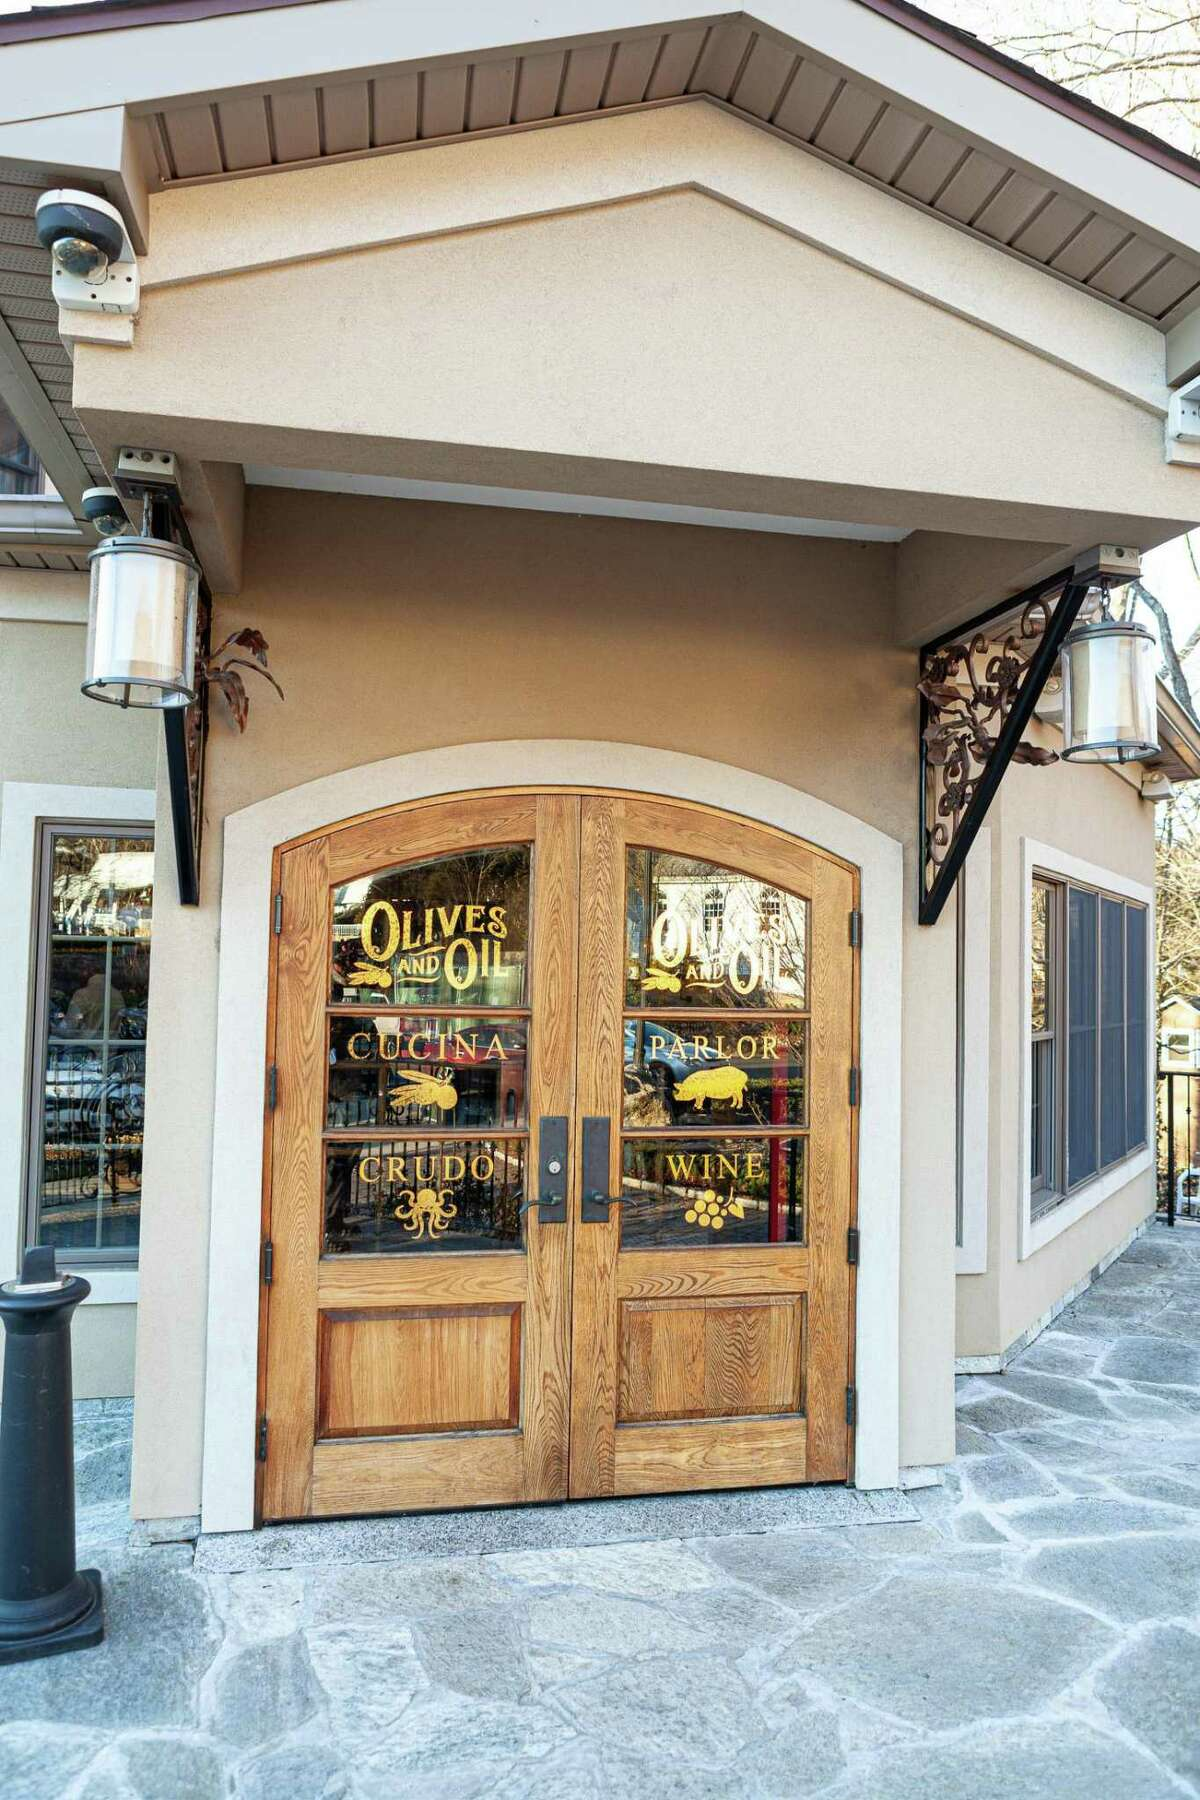 """The latest addition to the Valley's culinary scene-Olives & Oil- has opened its """"electric Italian cuisine"""" restaurant on Roosevelt Drive."""